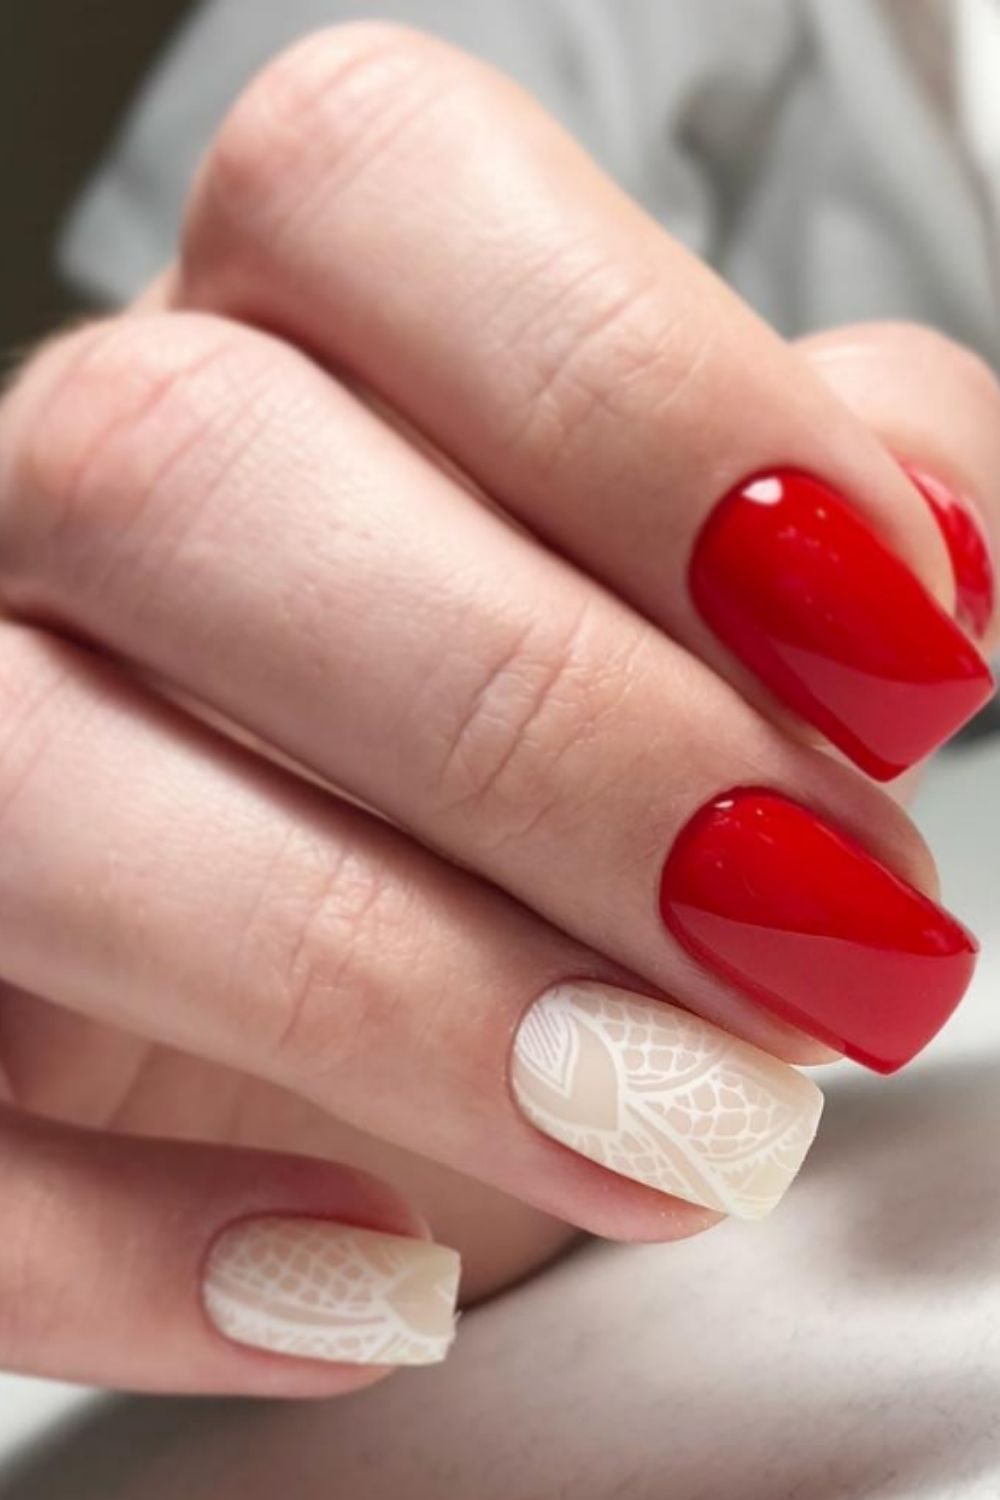 Red Acrylic Nails: 30 Creative Nail Designs to Inspire You